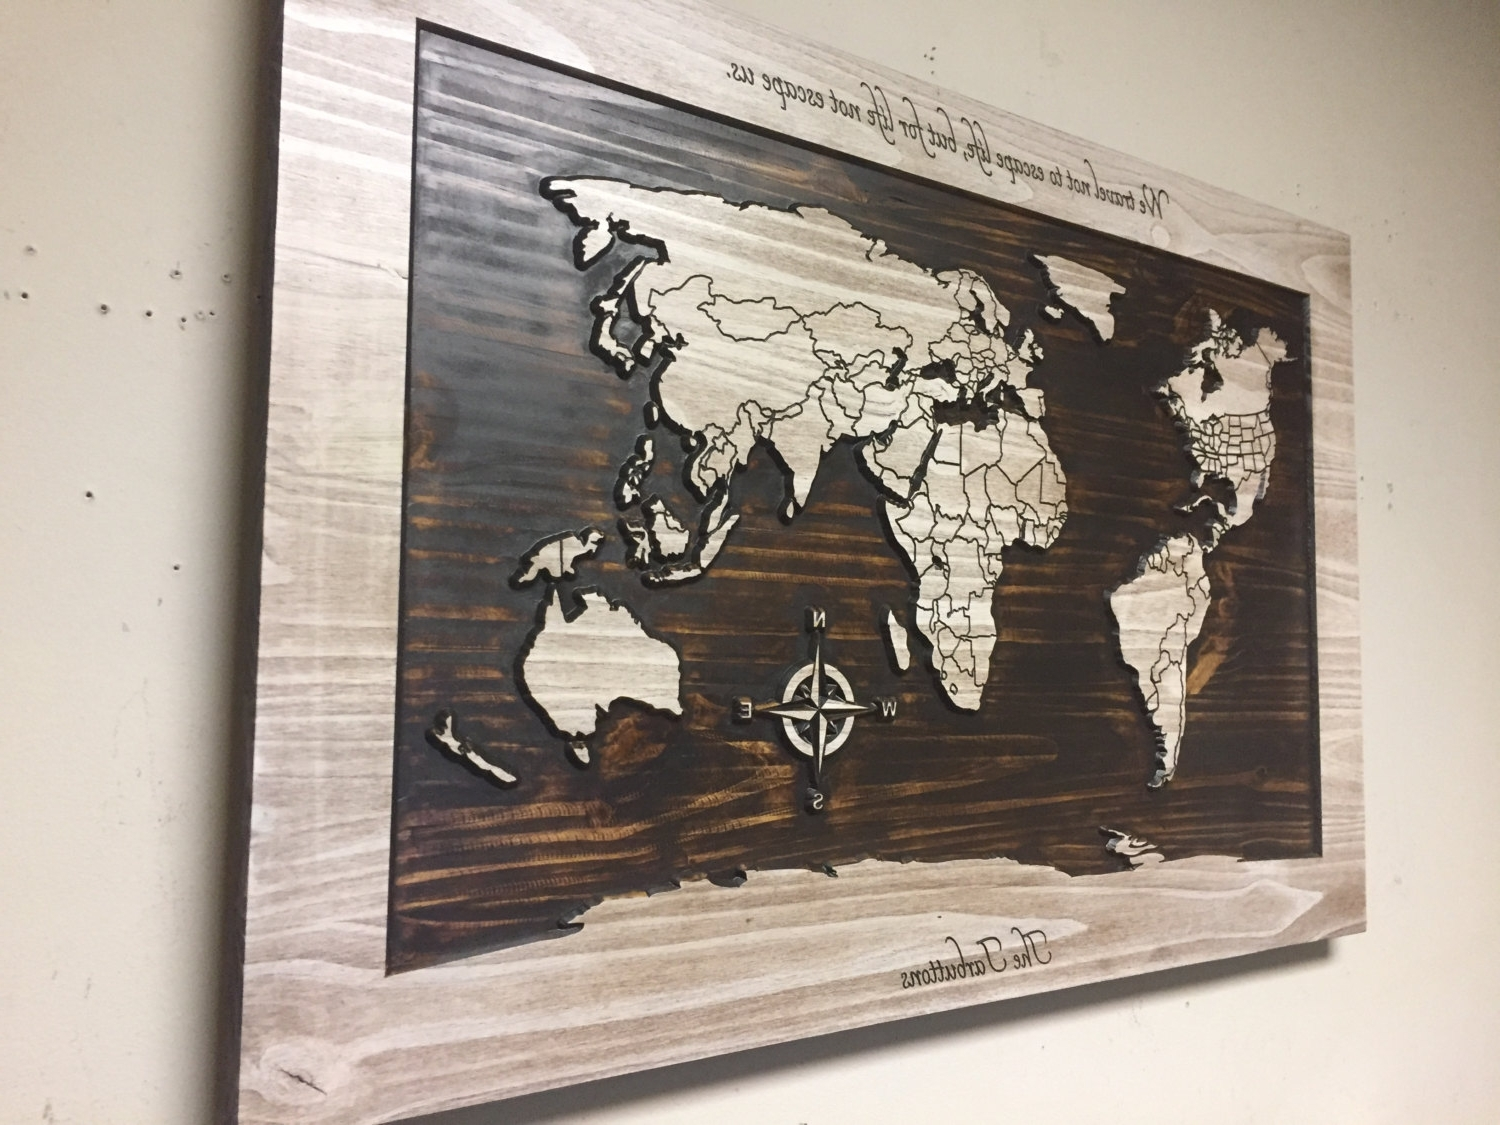 Wood Wall Art, World Map Wall Art, Carved Wooden World Map With With Regard To Favorite World Wall Art (View 13 of 15)